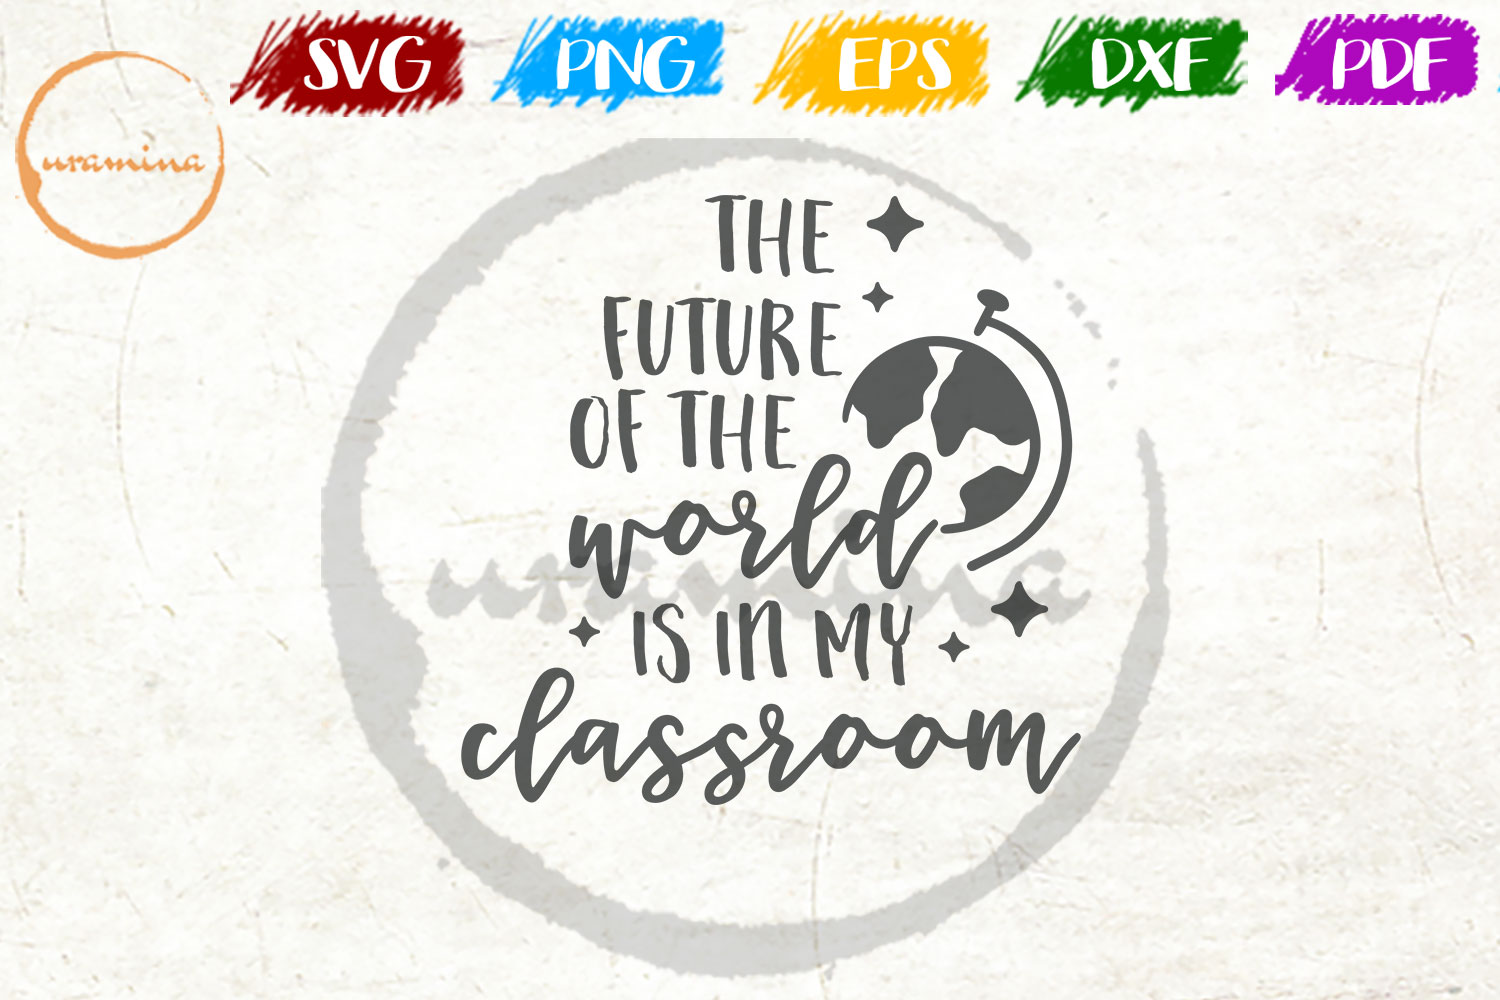 Download Free The Future Of The World Is In My Classroom Graphic By Uramina SVG Cut Files